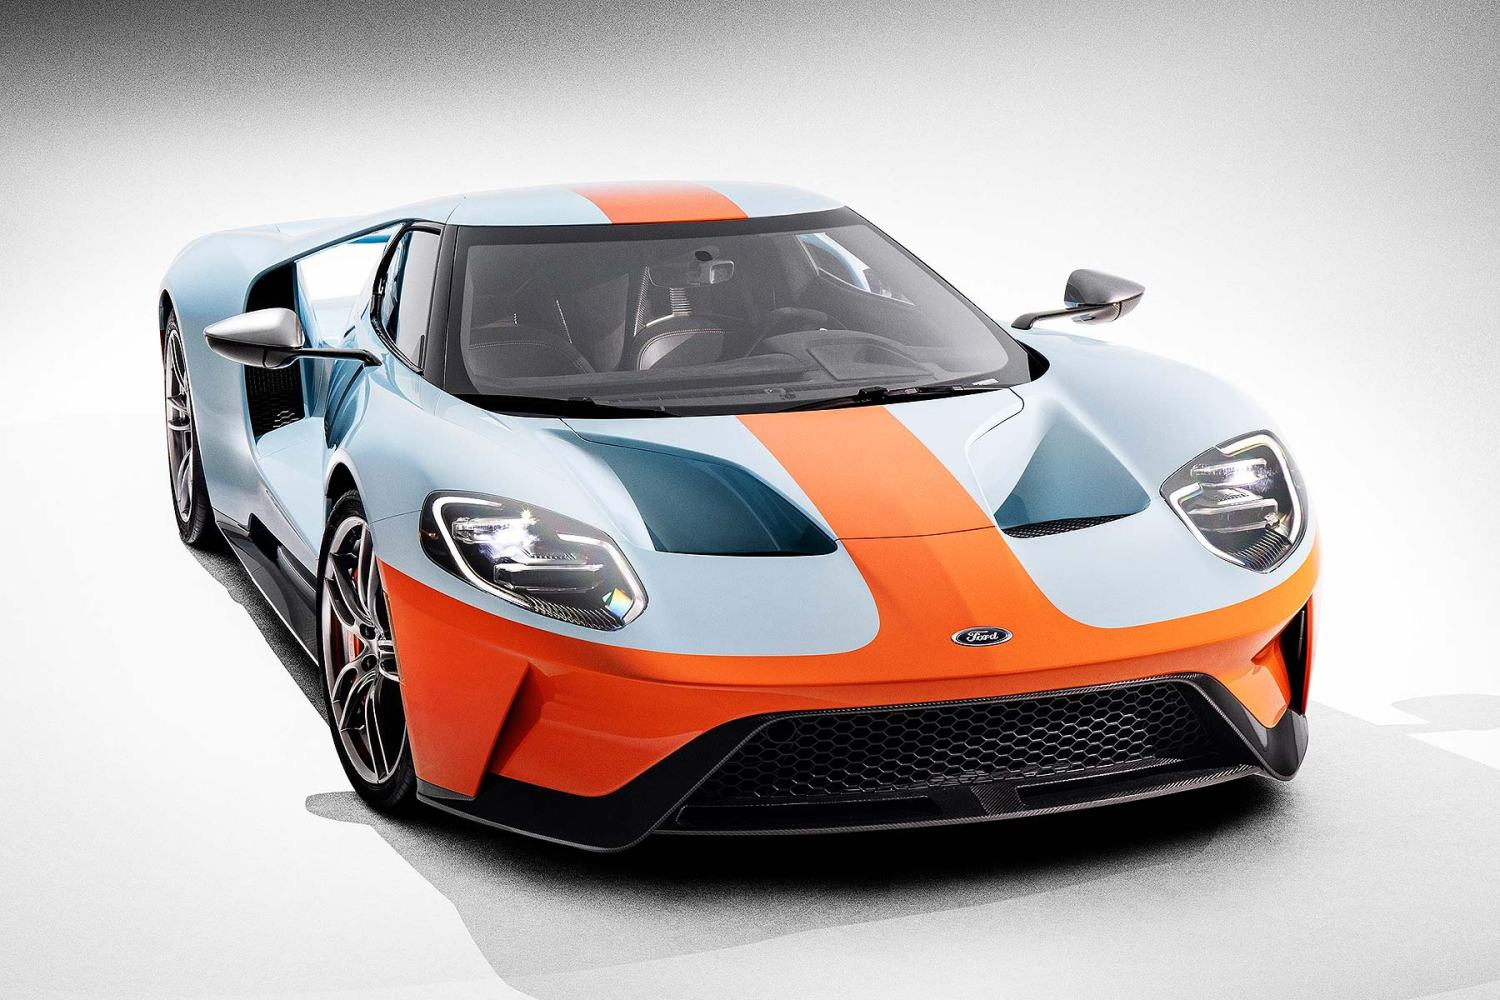 2019 Ford GT supercar